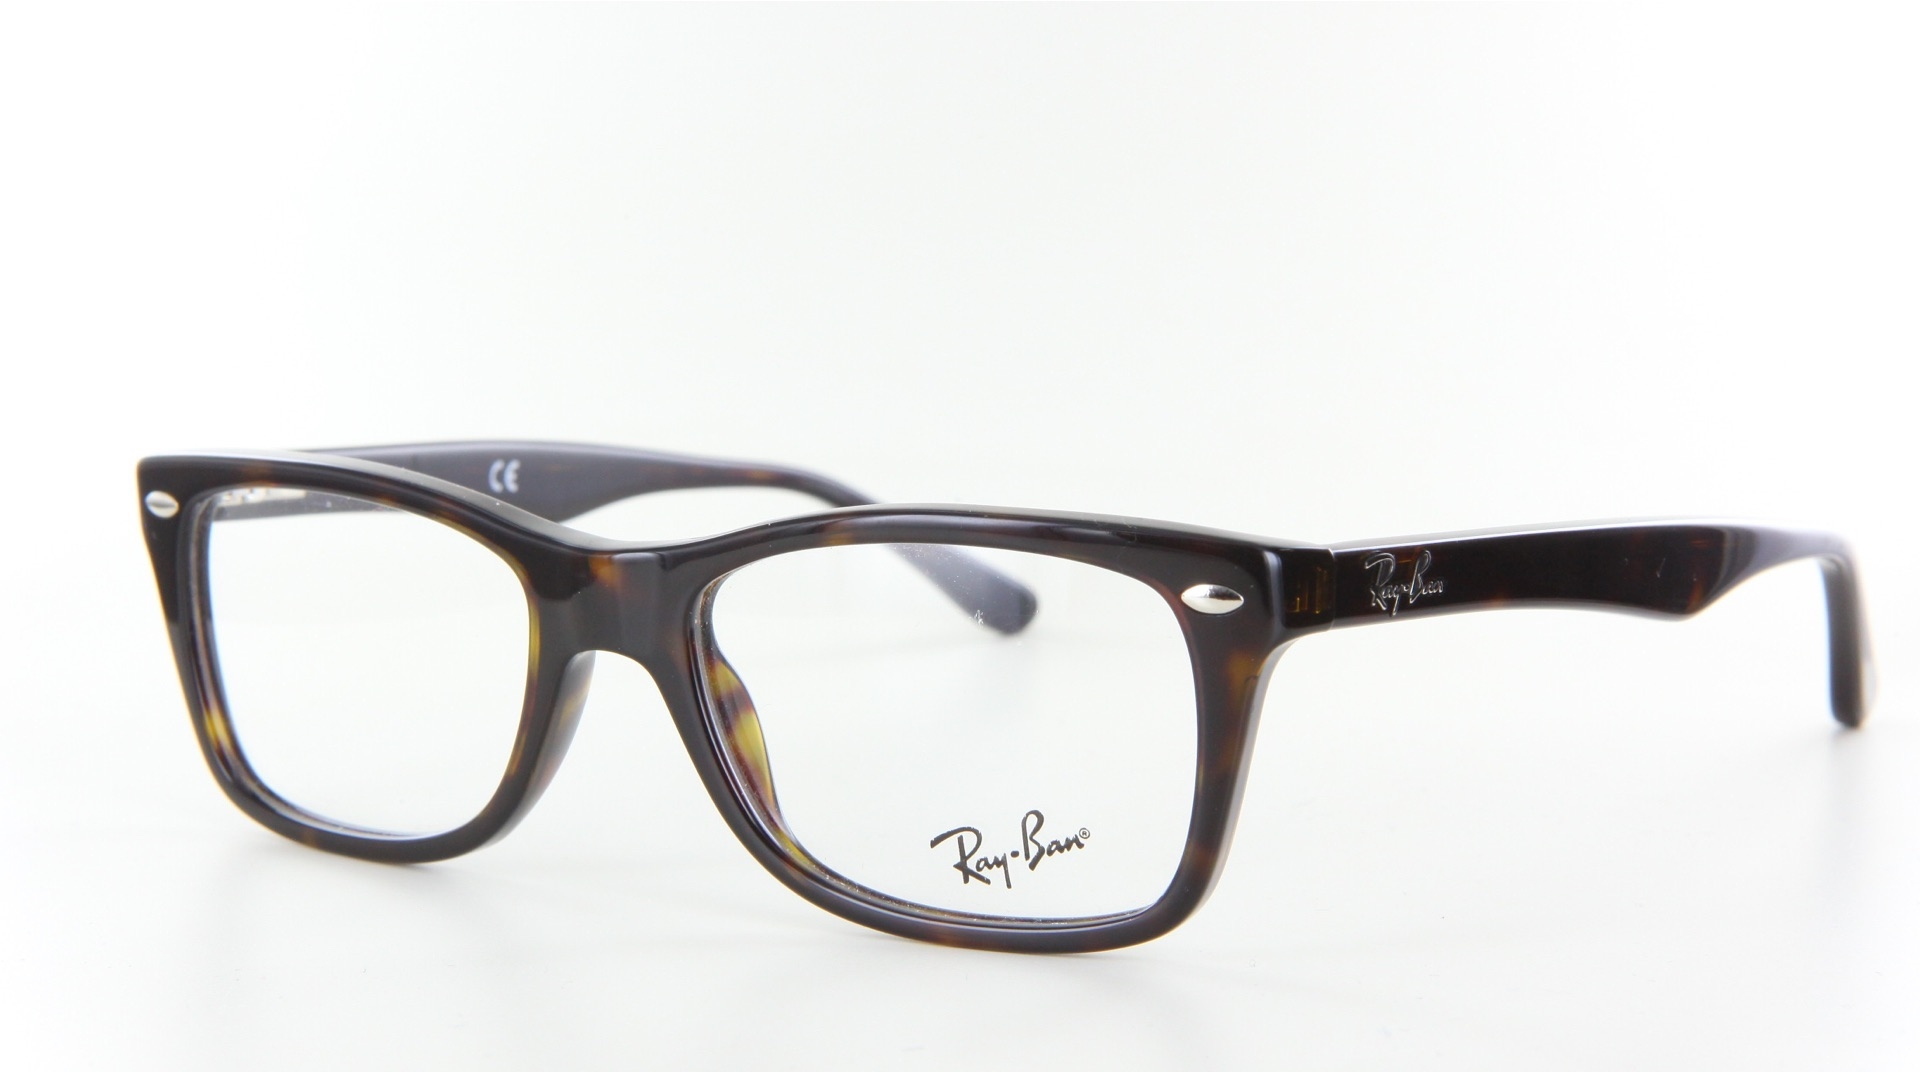 Ray-Ban - ref: 63459